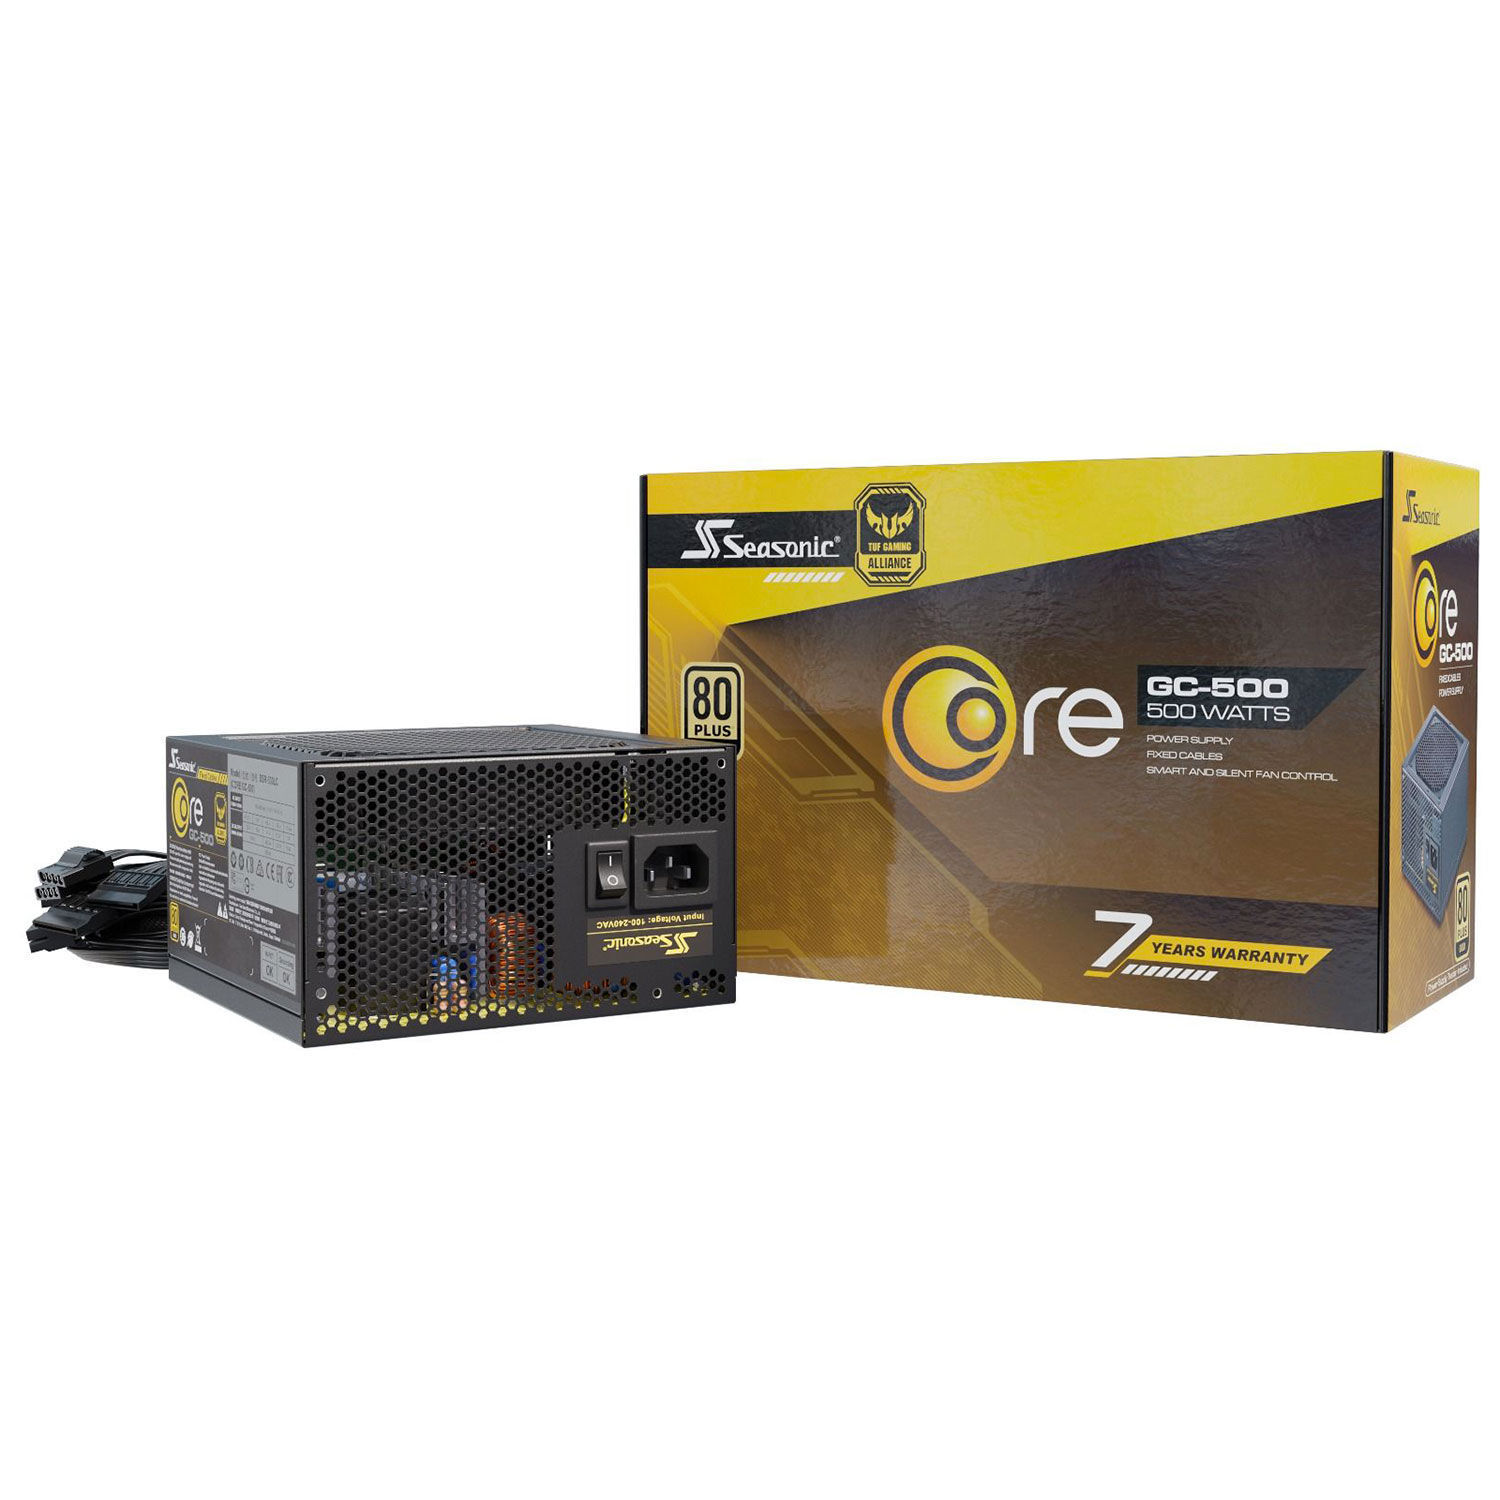 Core GC 650 650W - 80 Plus Gold